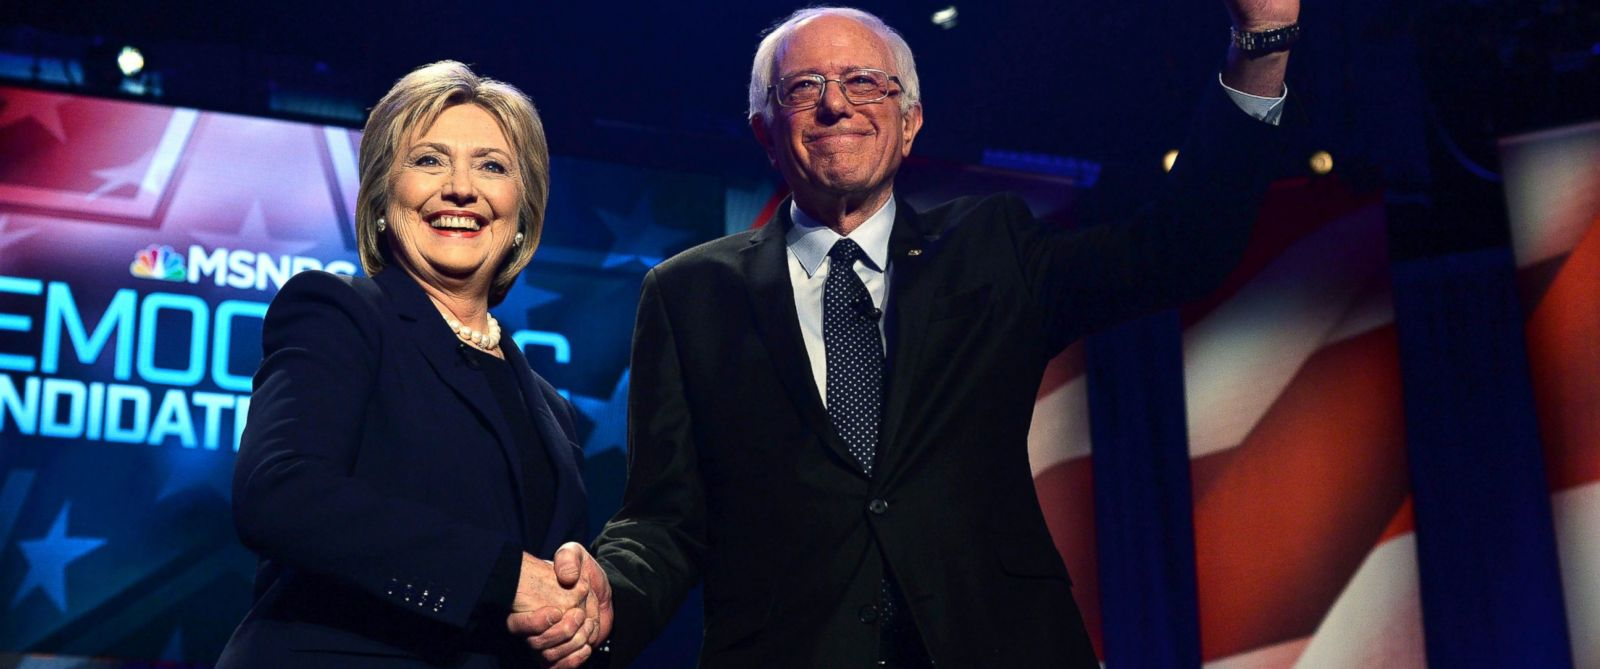 PHOTO: Hillary Clinton and Bernie Sanders shake hands before participating in the MSNBC Democratic Candidates Debate, Feb. 4, 2016.